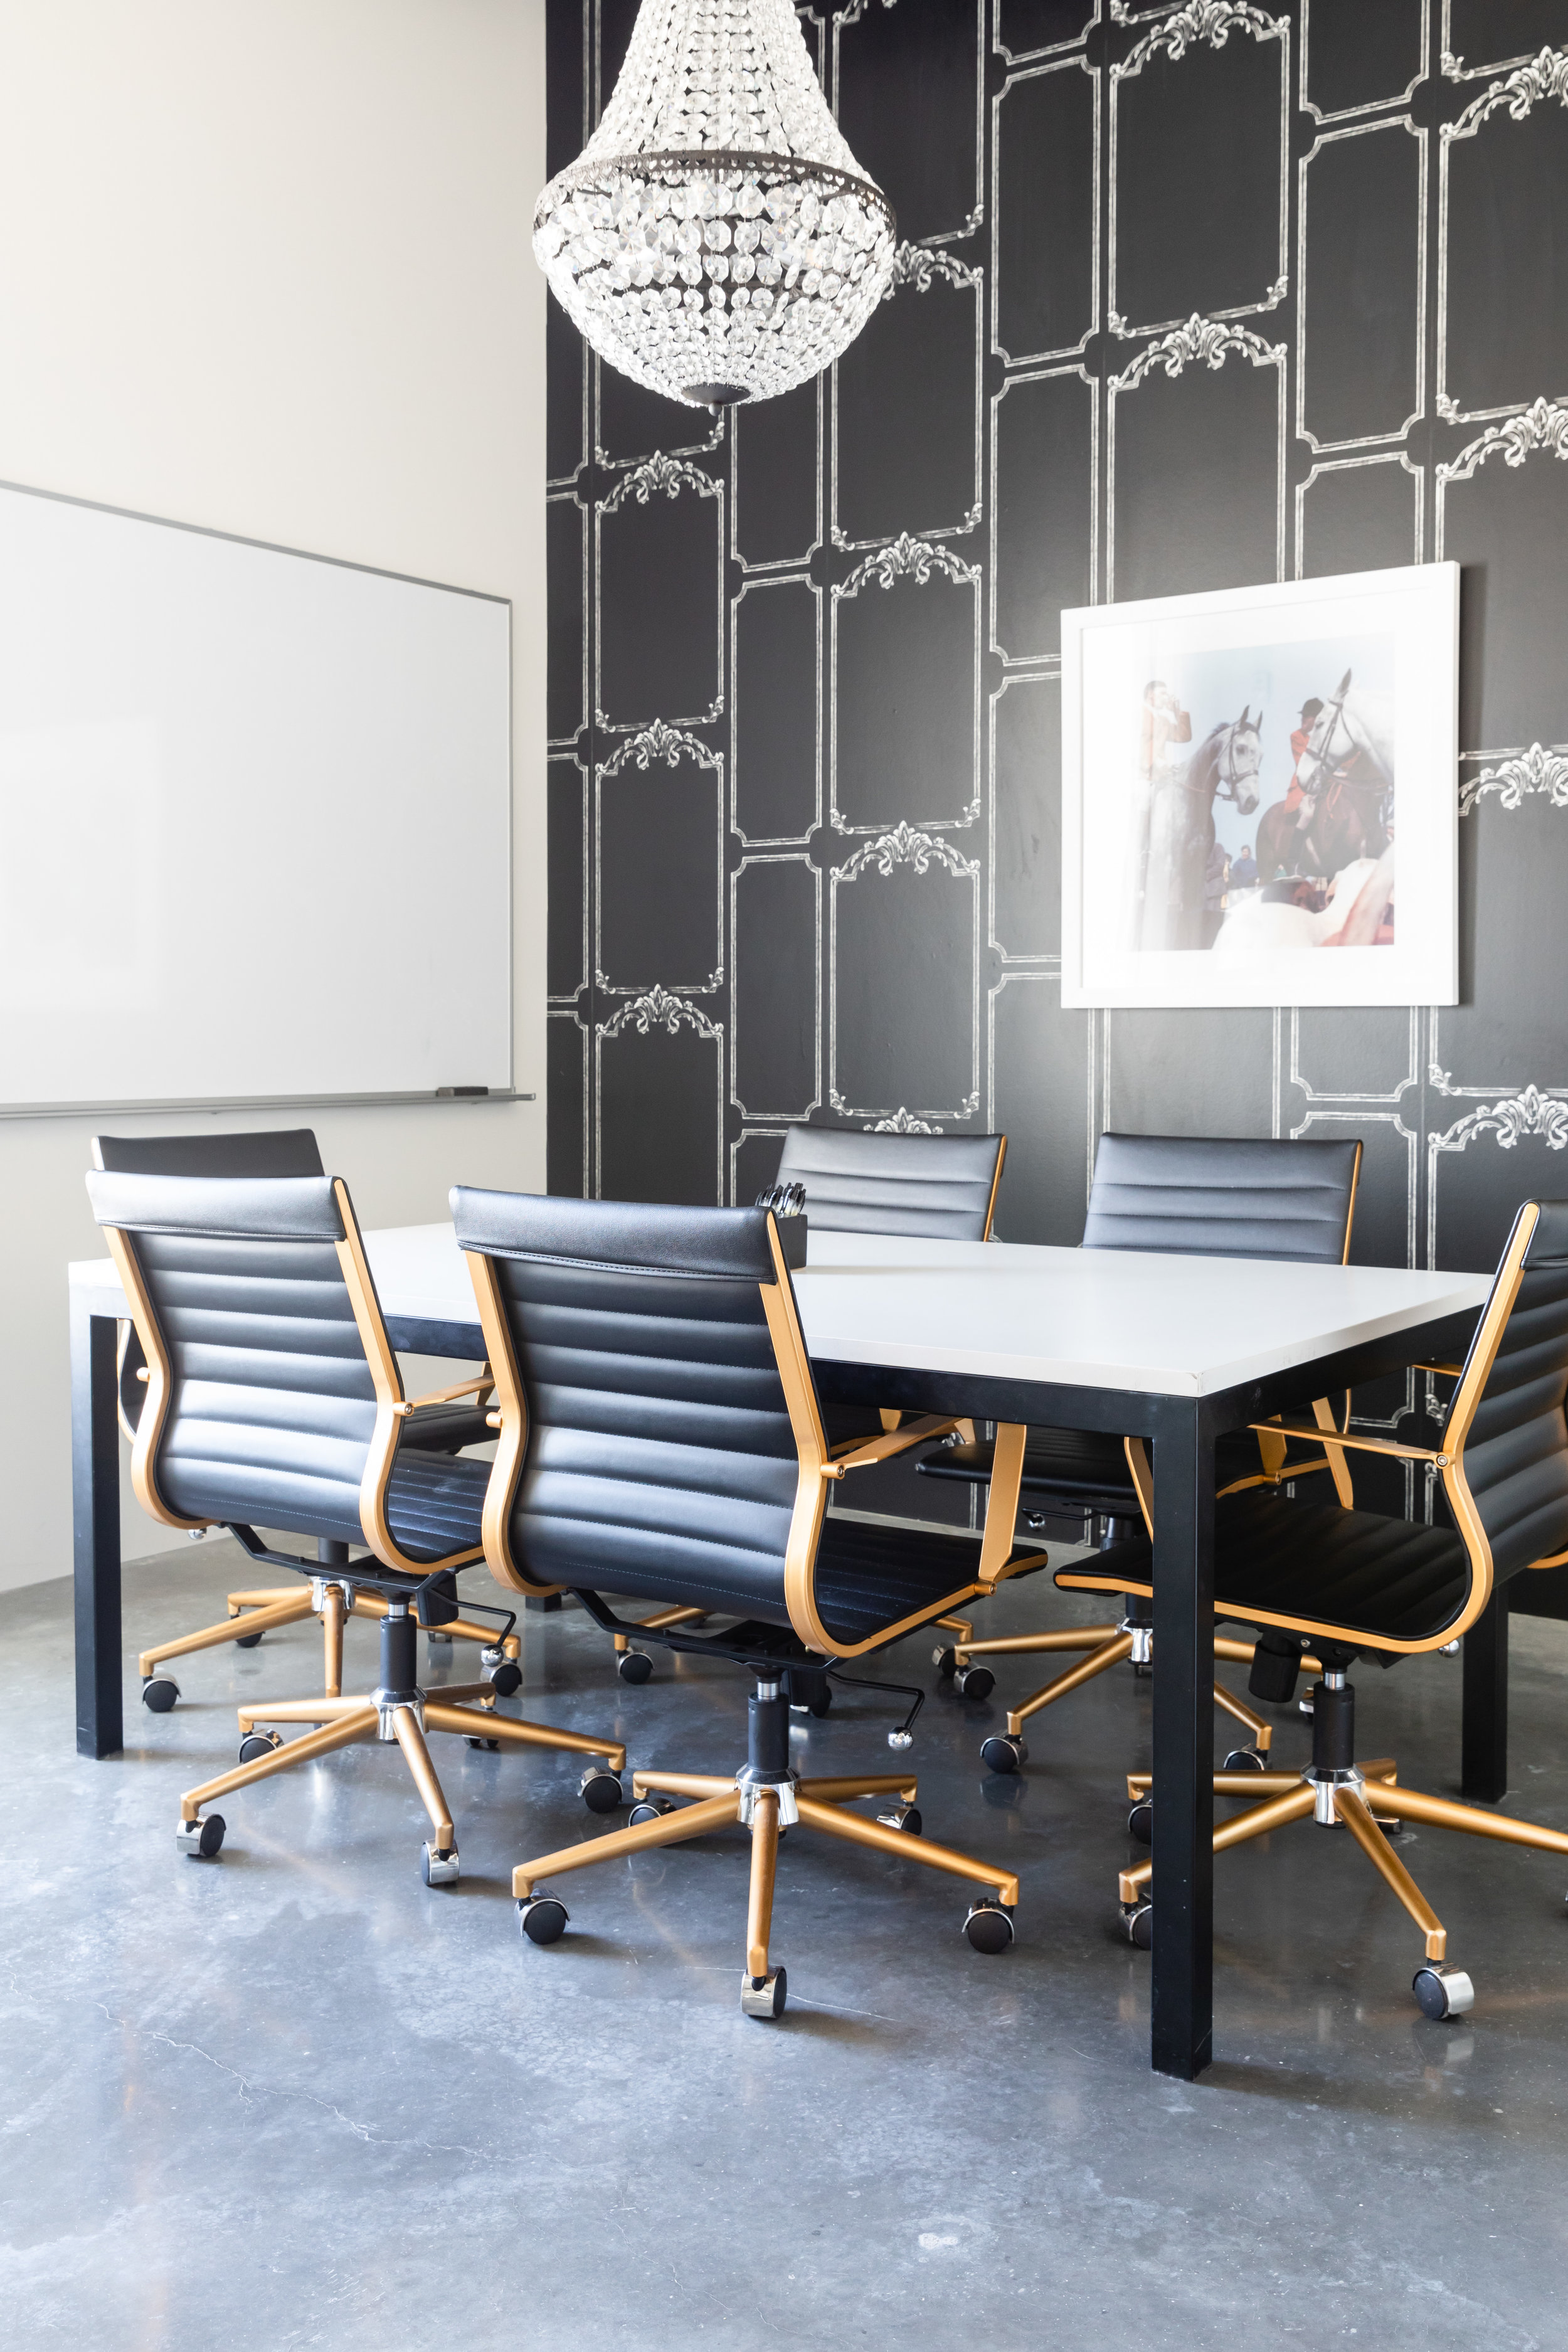 Black and white conference room with glass chandelier and black leather chairs.